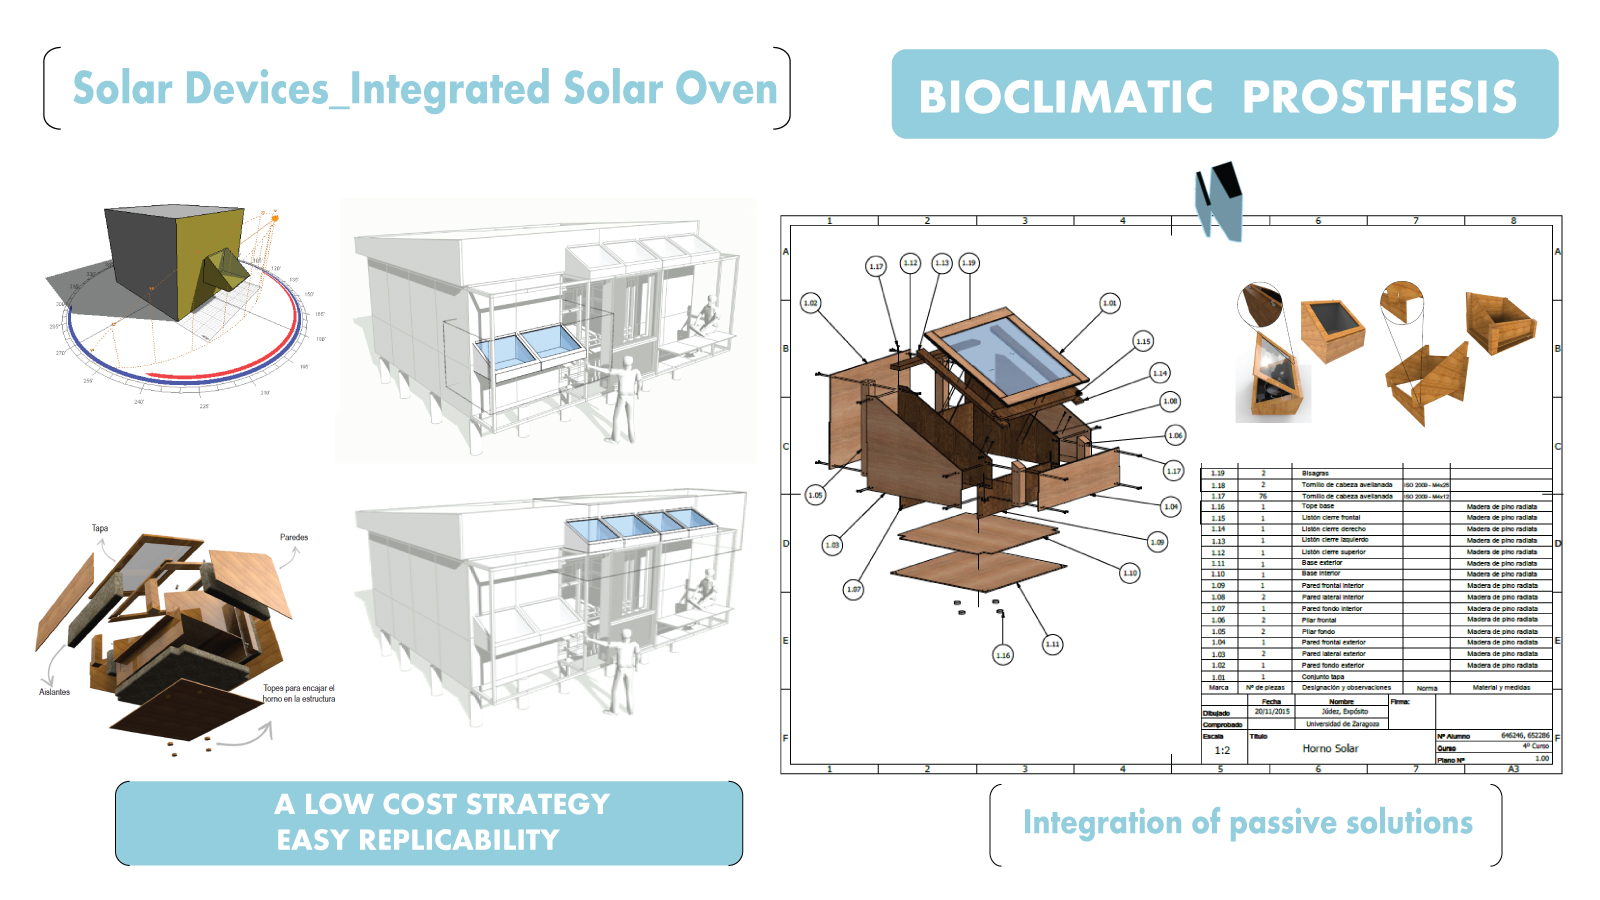 Bioclimatic Prosthesis Wdcd Climate Challenge